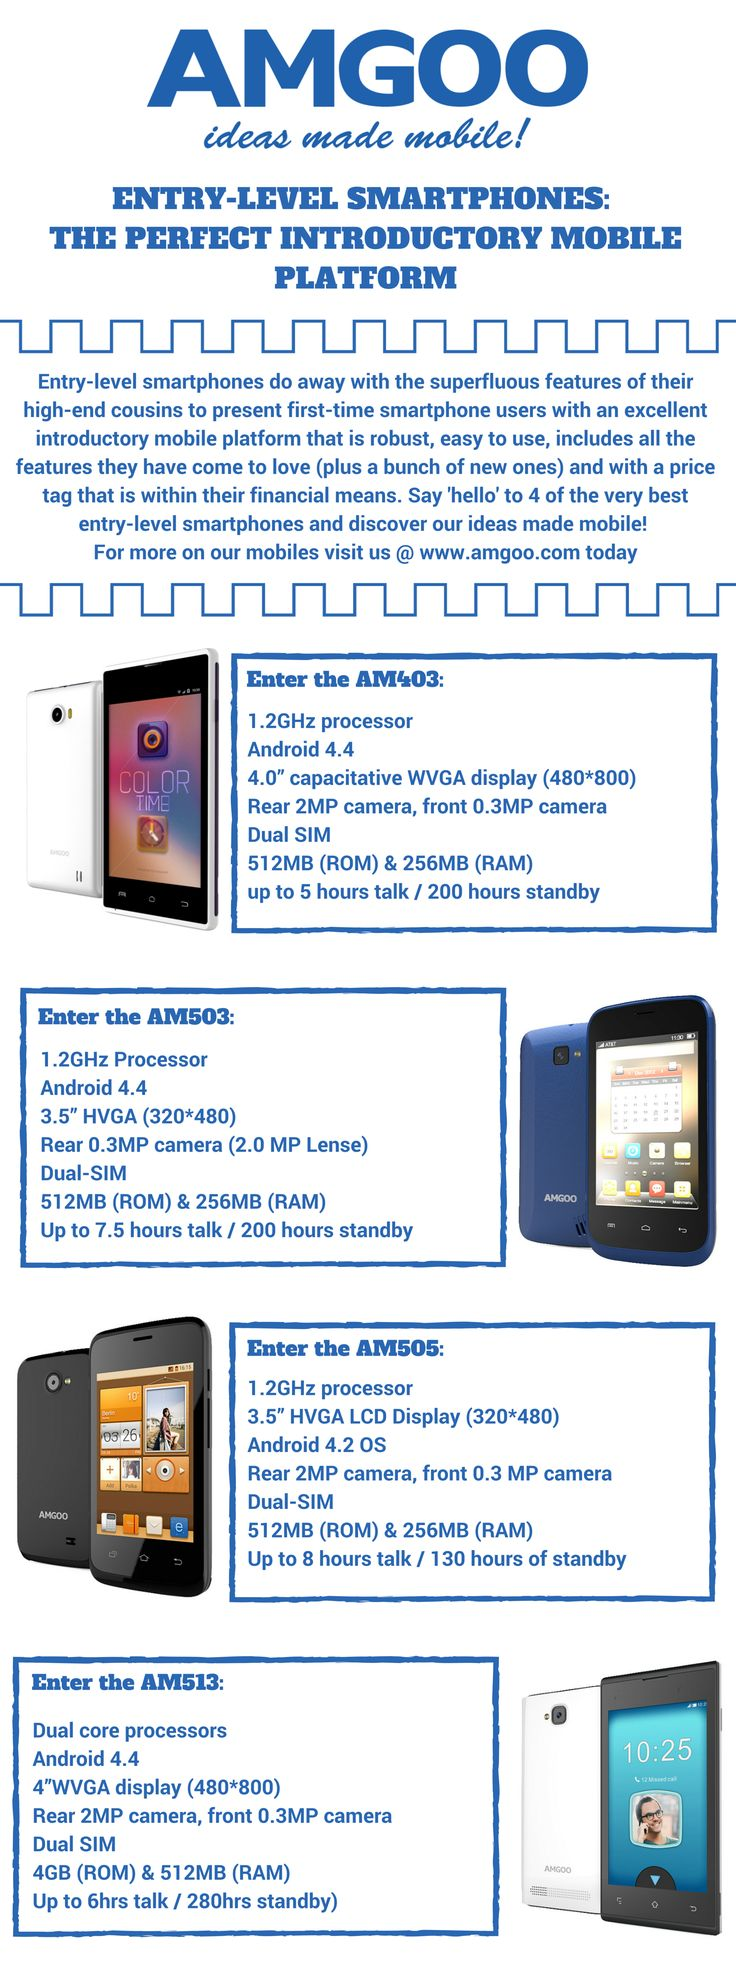 Entry-level smartphones are the perfect introductory mobile platform for first-time smartphone users around the world! Discover 4 of the very best of our entry-level offerings here and visit us @ http://www.amgoo.com/ for more of our mobiles! #AMGOO #EntryLevelSmartphones